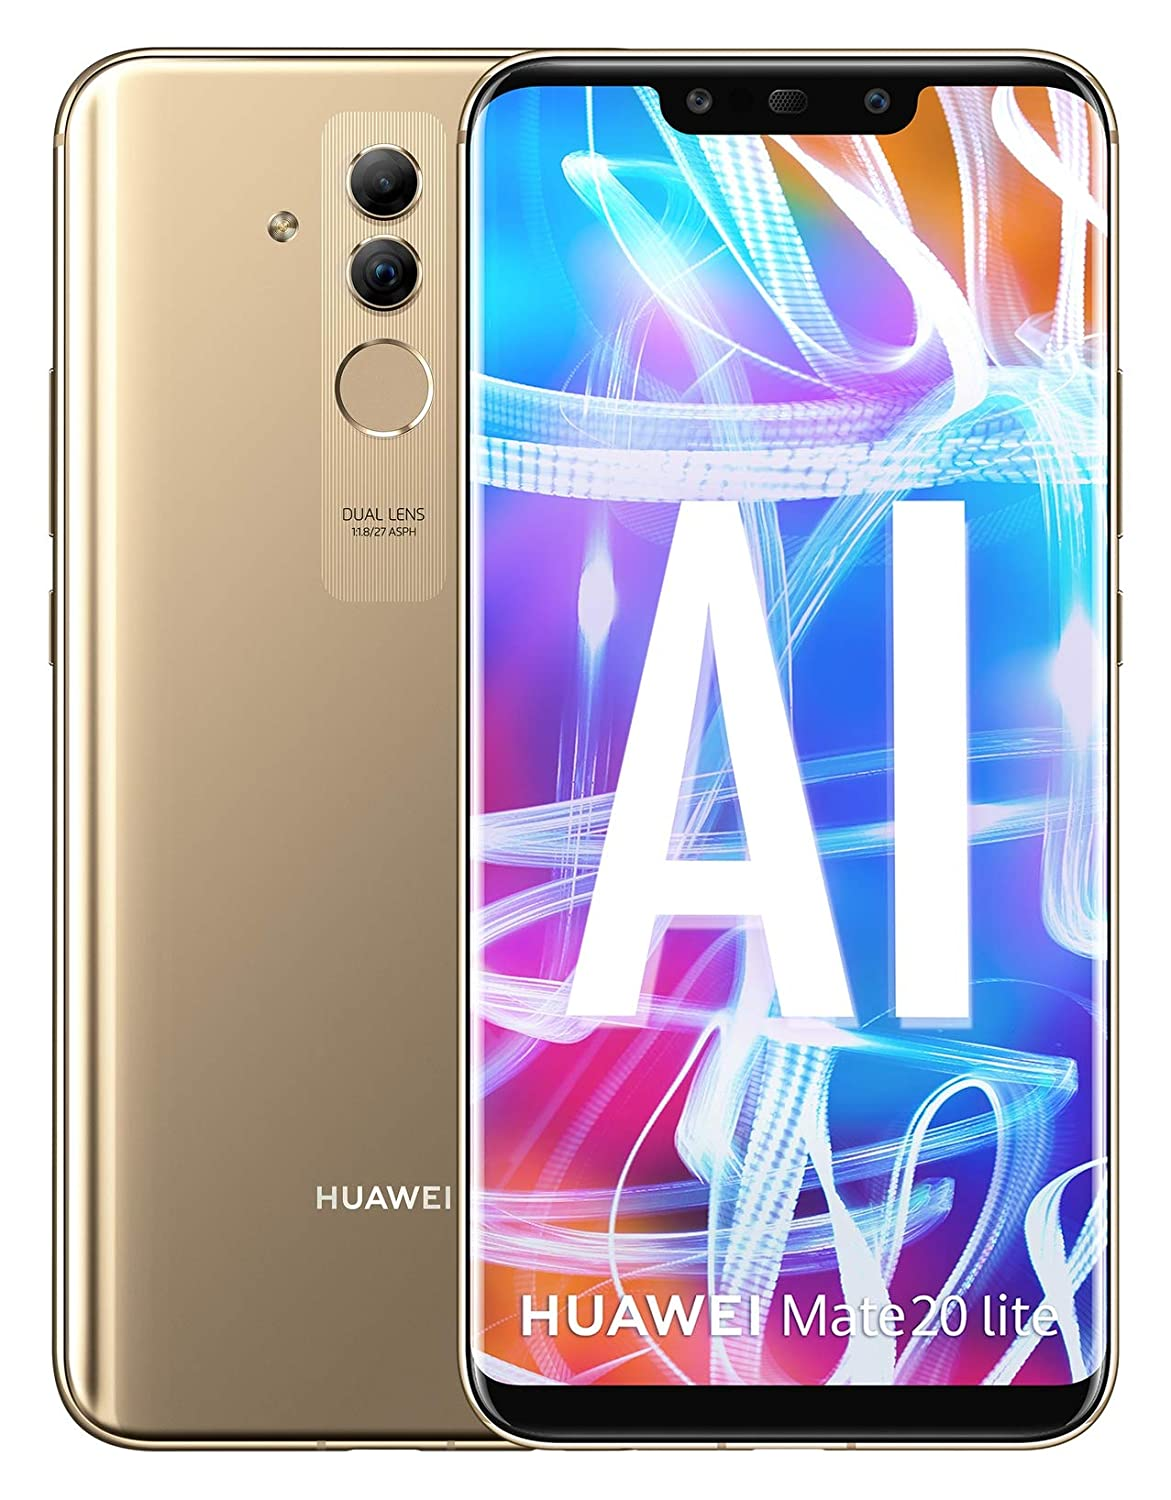 Huawei Mate 20 Lite SNE-LX3 64GB (Factory Unlocked) 6.3' FHD (International Version) (Platinum Gold)